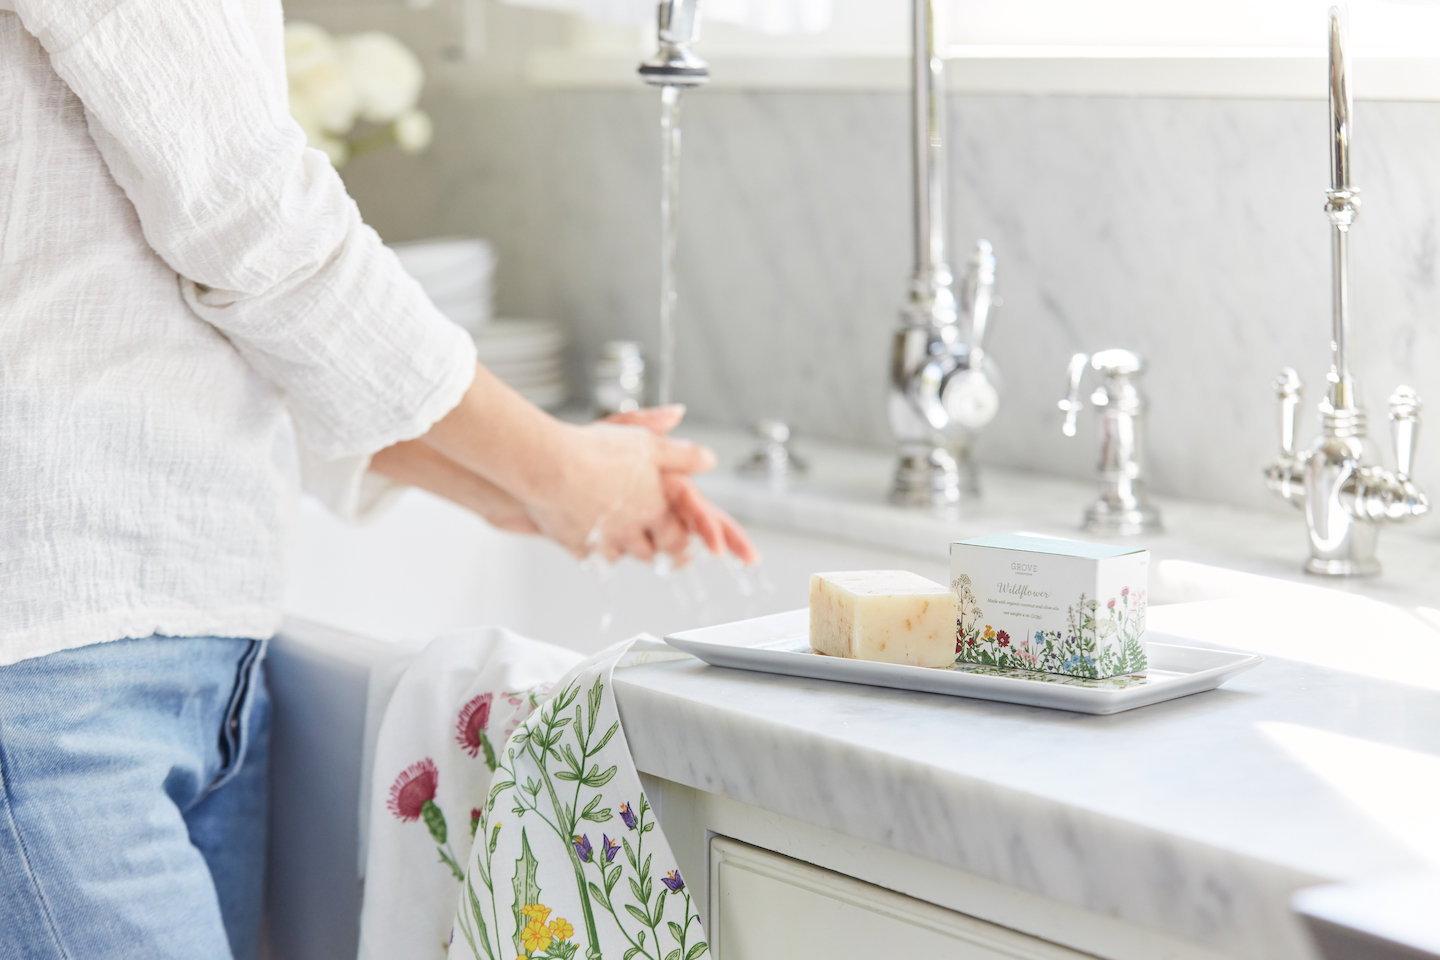 woman washing hands with grove bar soap